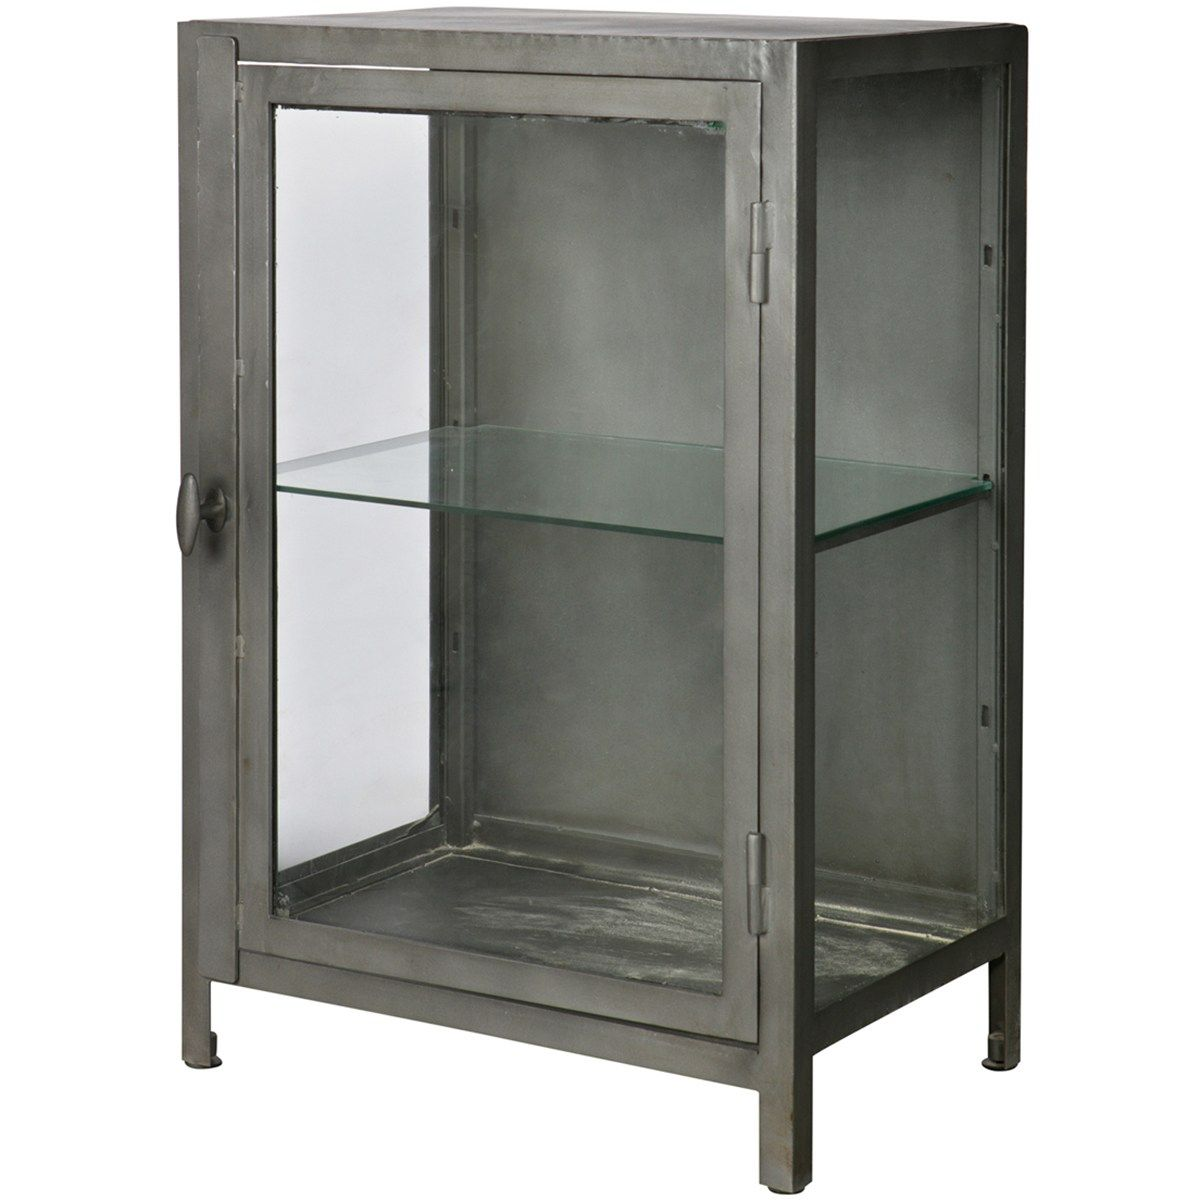 Showmedicine Display Low Cabinet Living Room Cabinet